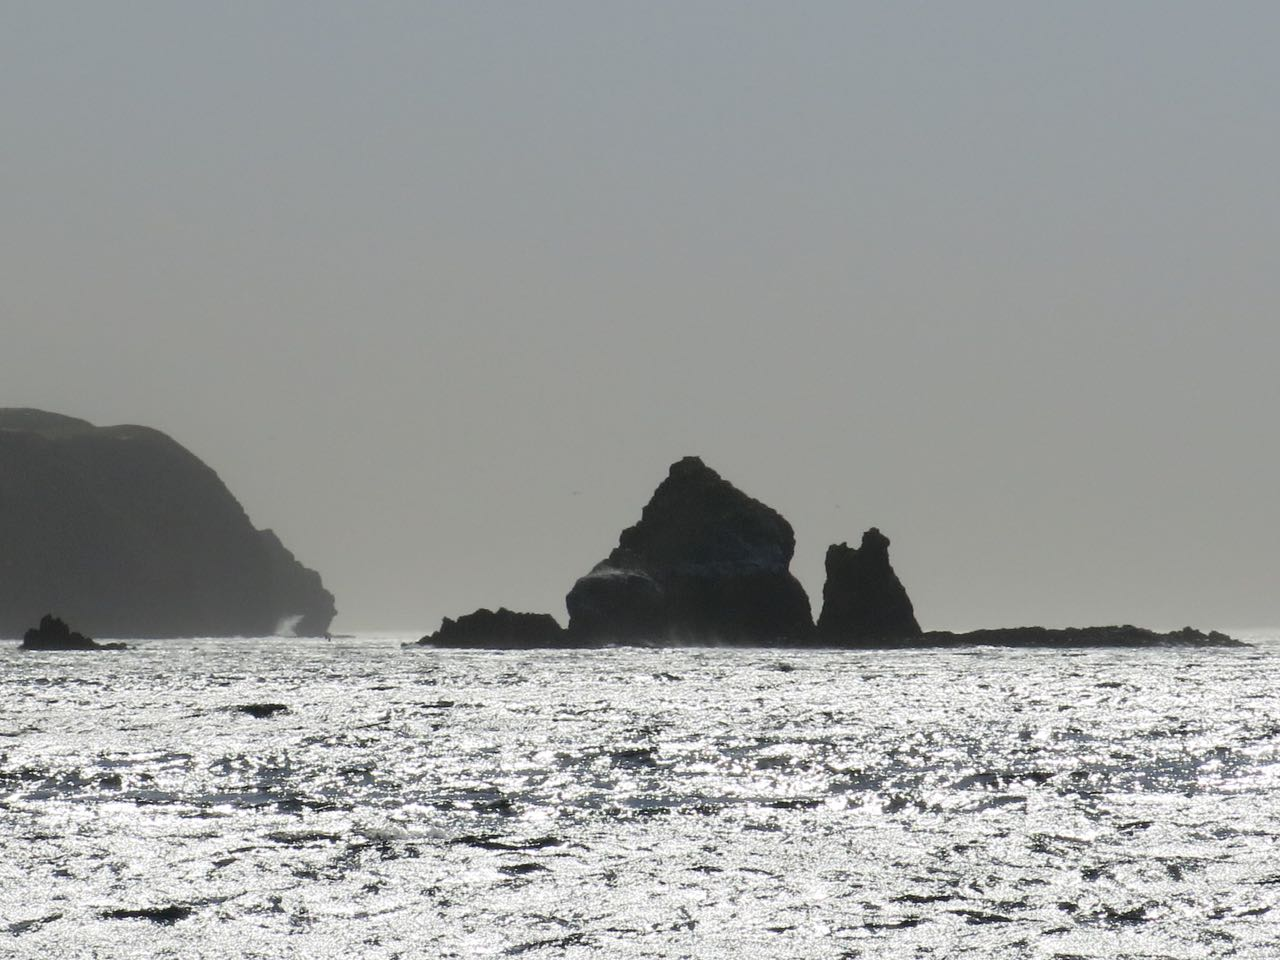 Go to Cat Rock on Santa Cruz Islands with Capt. Dan Ryder and Sai Channel Islands